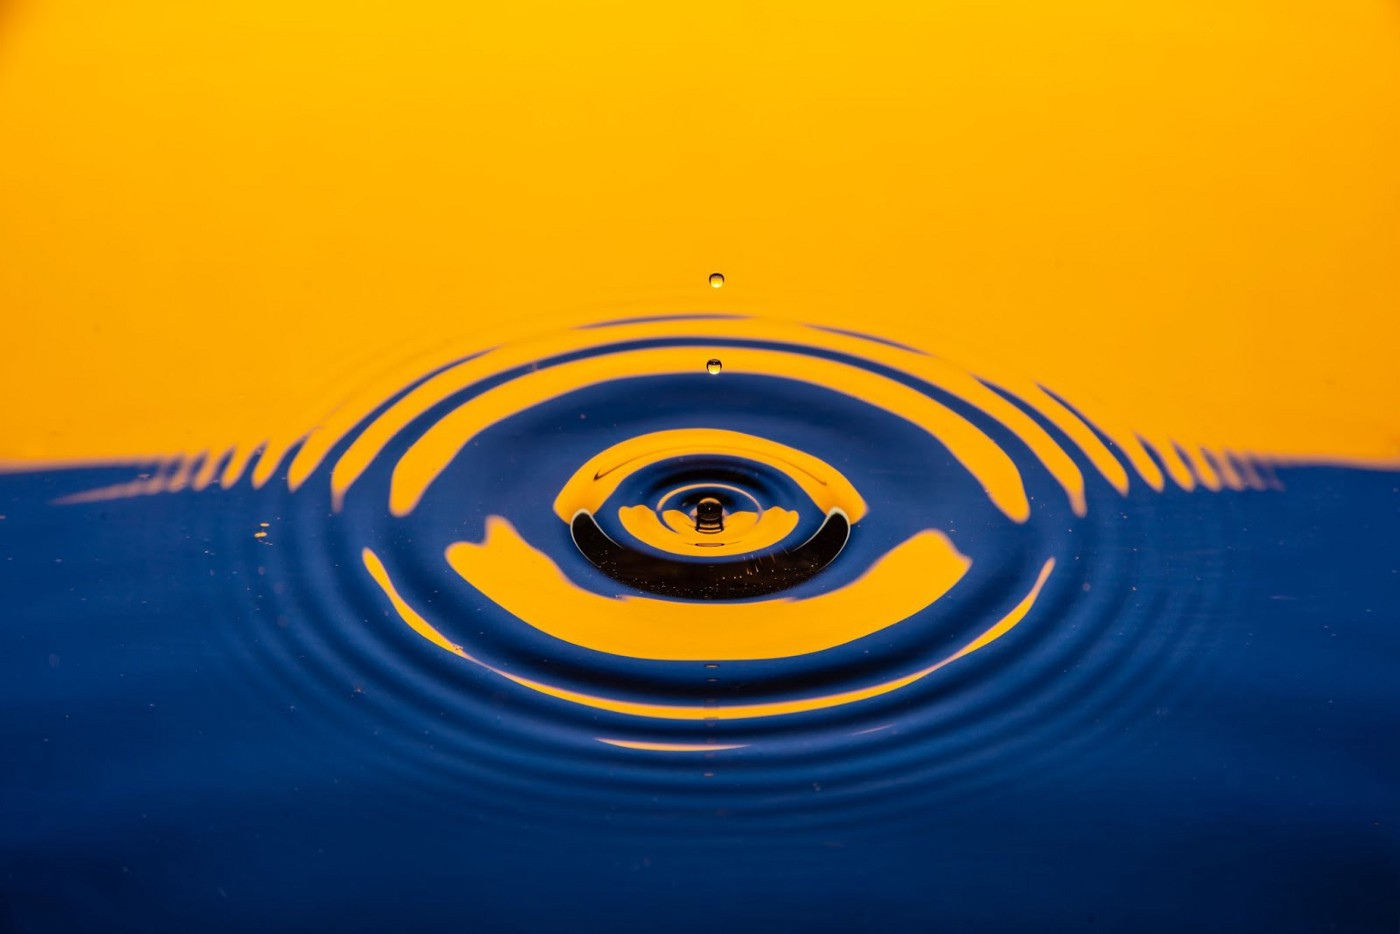 Ripples from a drop of water on a late afternoon